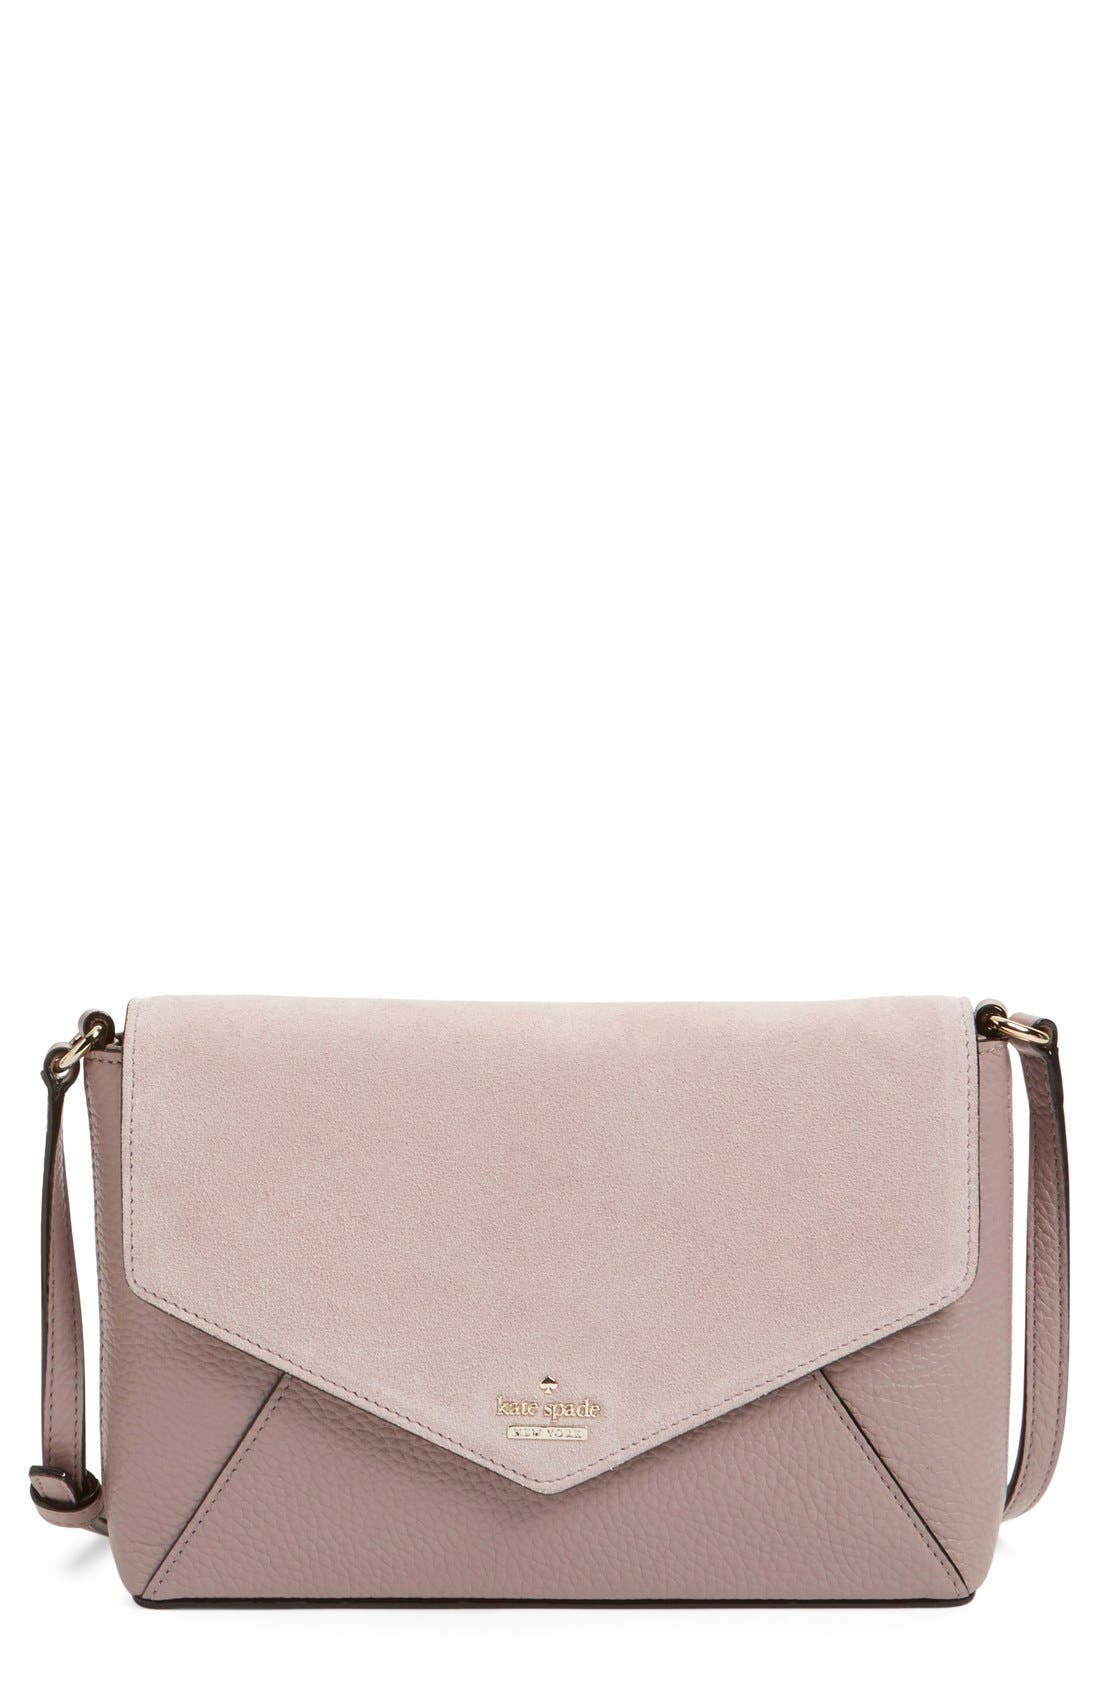 Main Image - kate spade new york 'spencer court - large monday' suede & leather envelope crossbody bag (Nordstrom Exclusive)